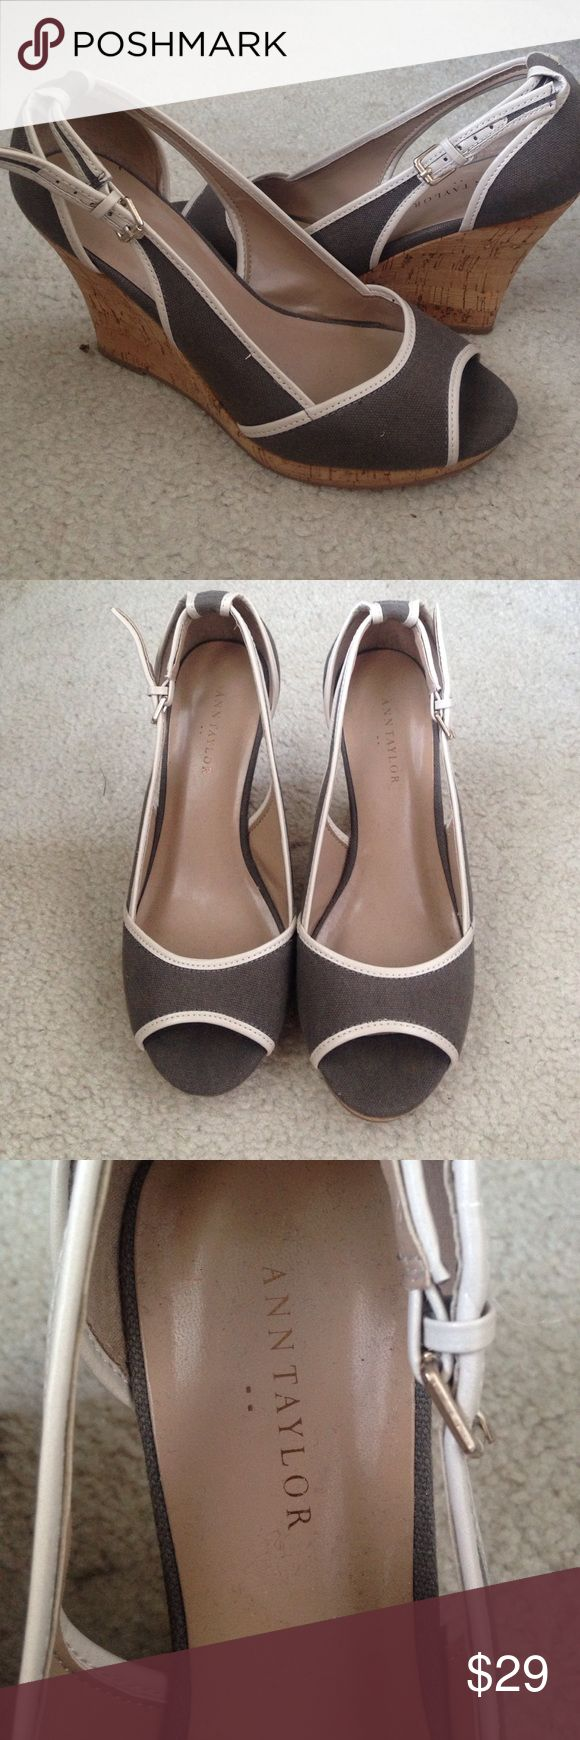 Ann Taylor gray wedge peep toe heels shoes, 6.5m Ann Taylor gray wedge peep toe heels shoes, 6.5m, 3.3 inch heel, great condition Ann Taylor Shoes Wedges